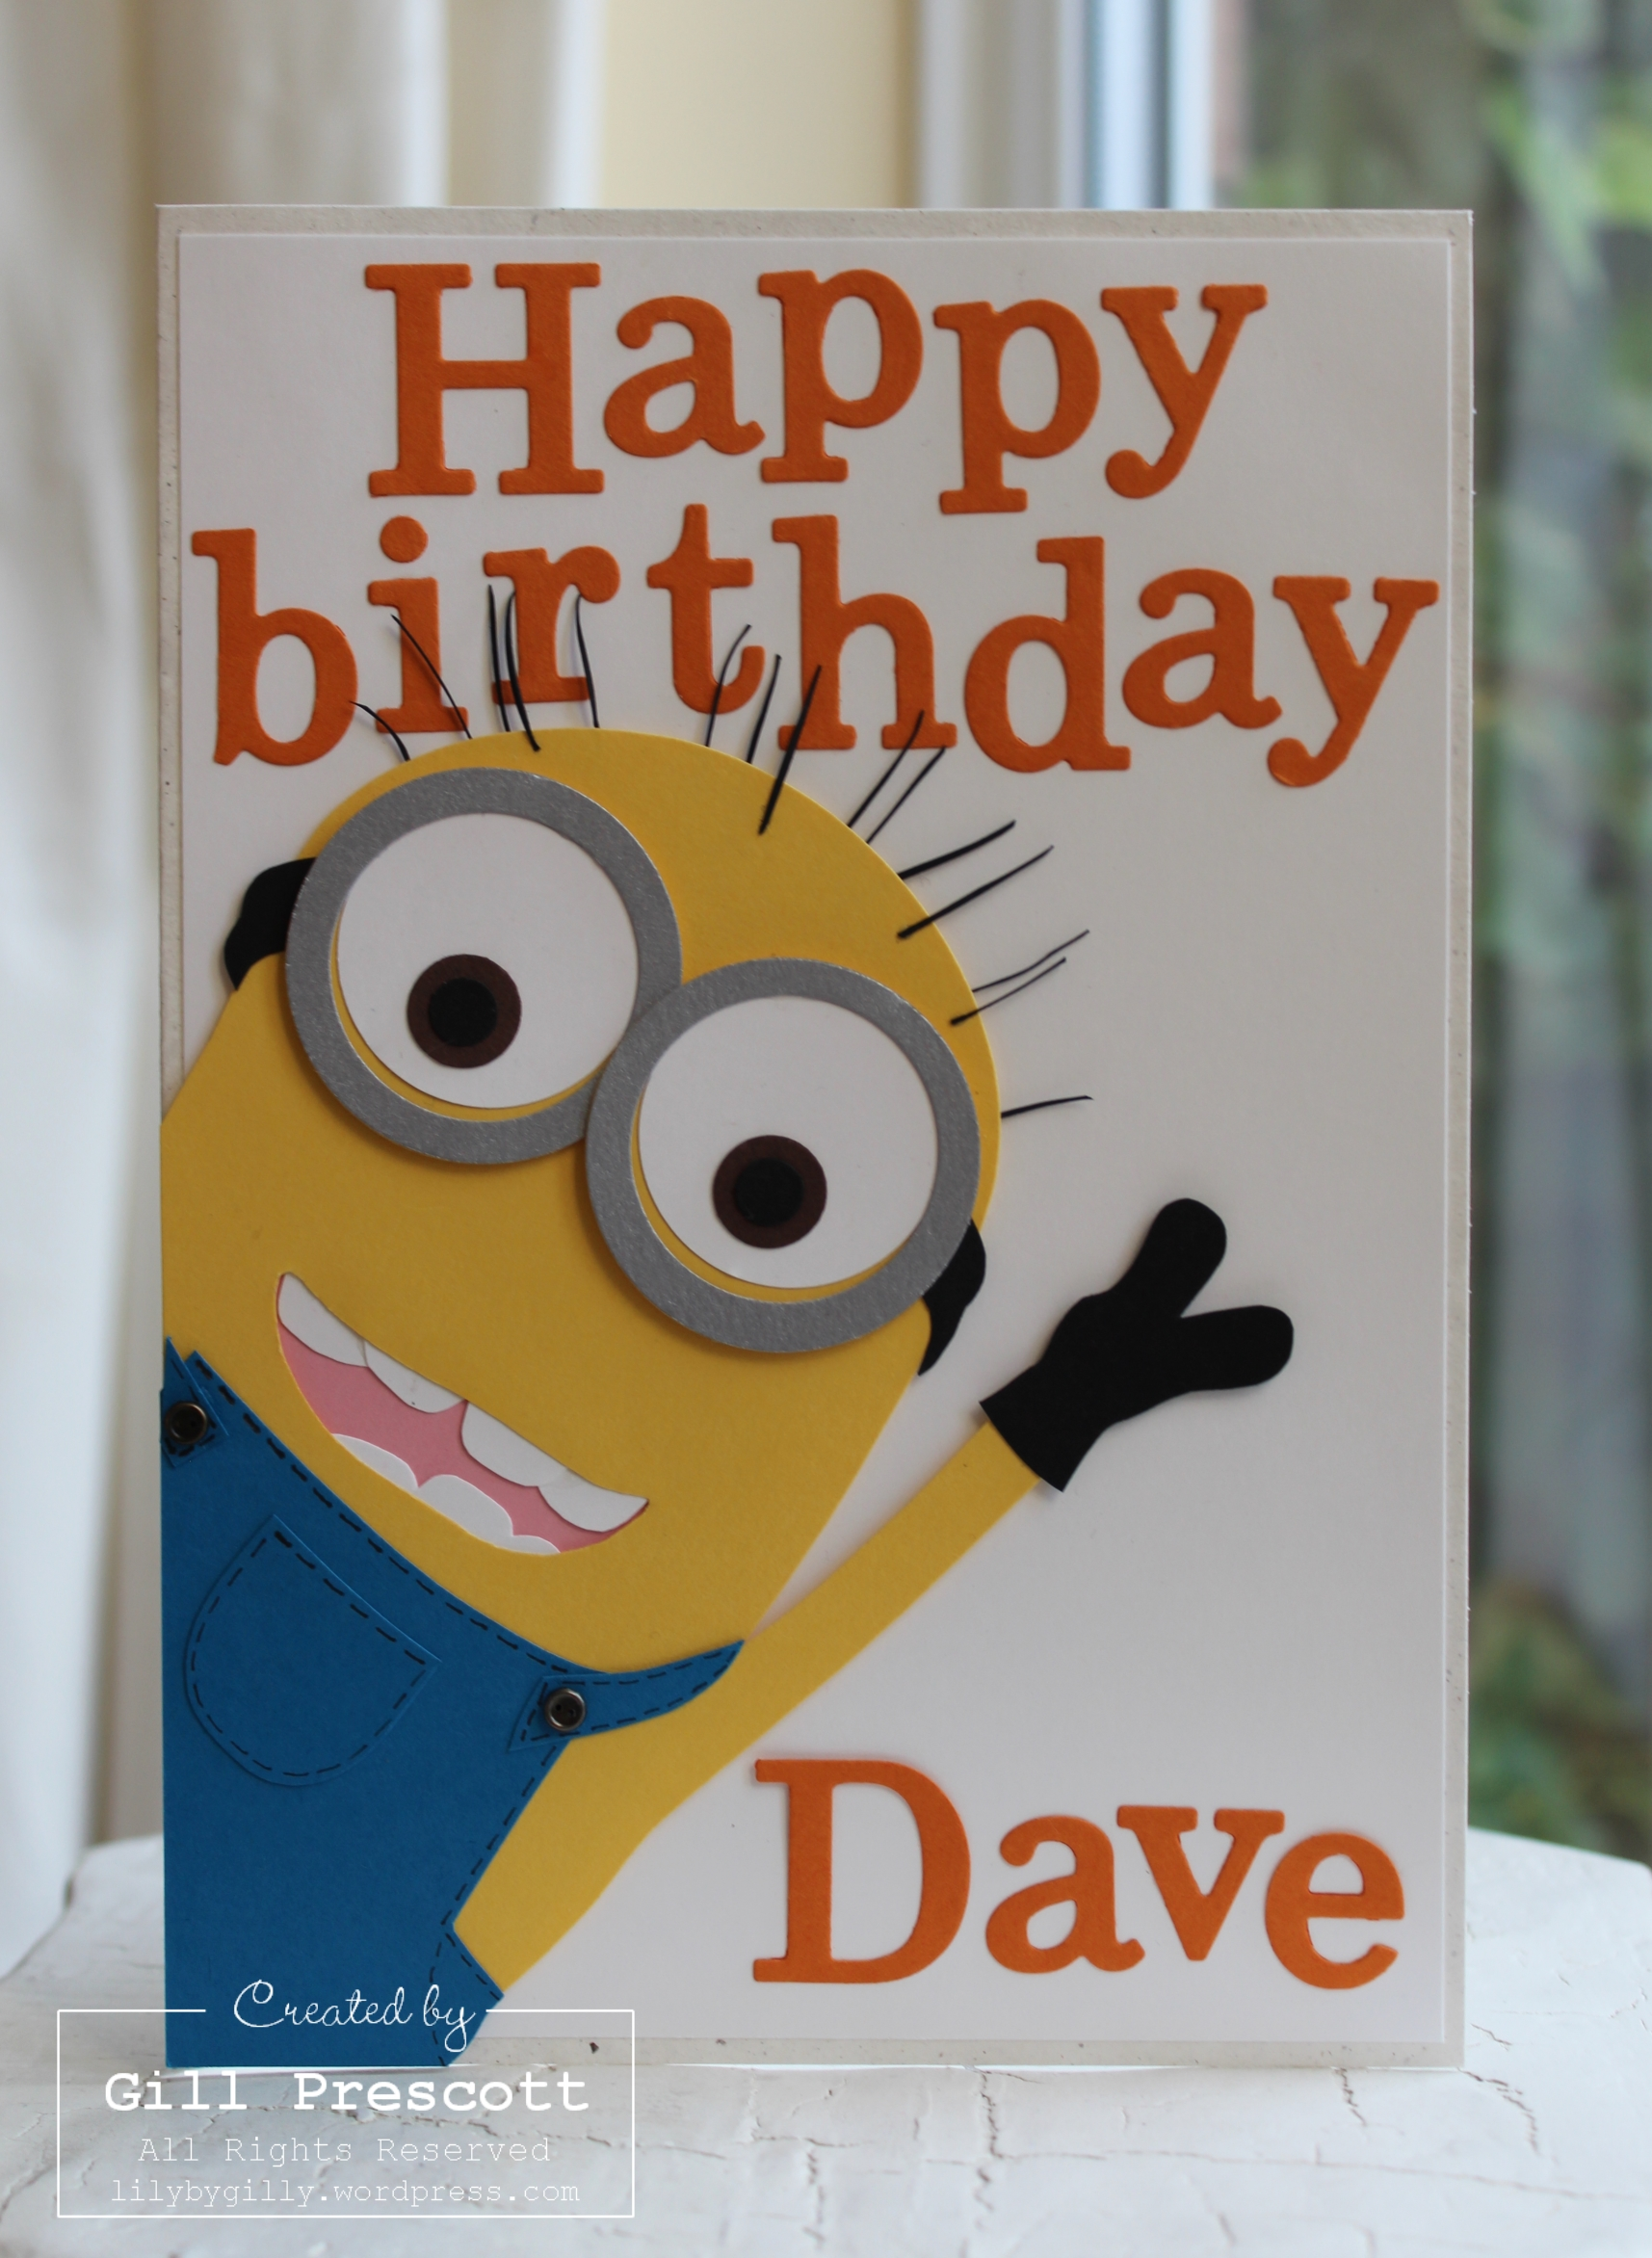 Despicable Me Minion Card Lily By Gilly